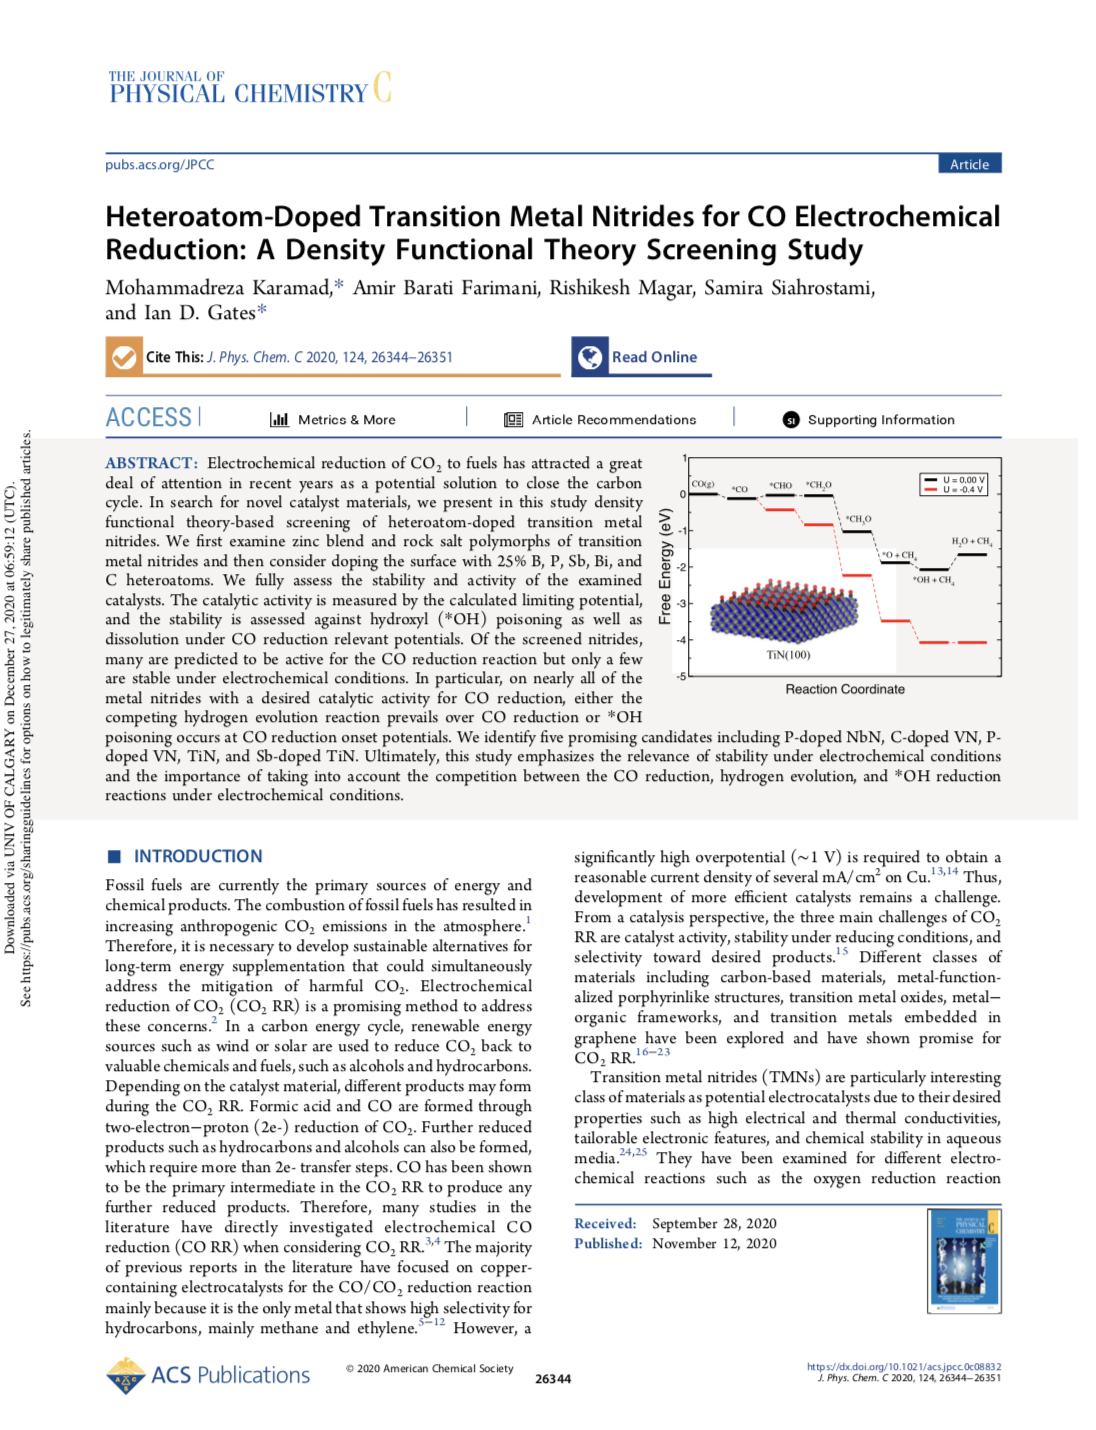 Heteroatom-Doped Transition Metal Nitrides for CO Electrochemical Reduction: A Density Functional Th